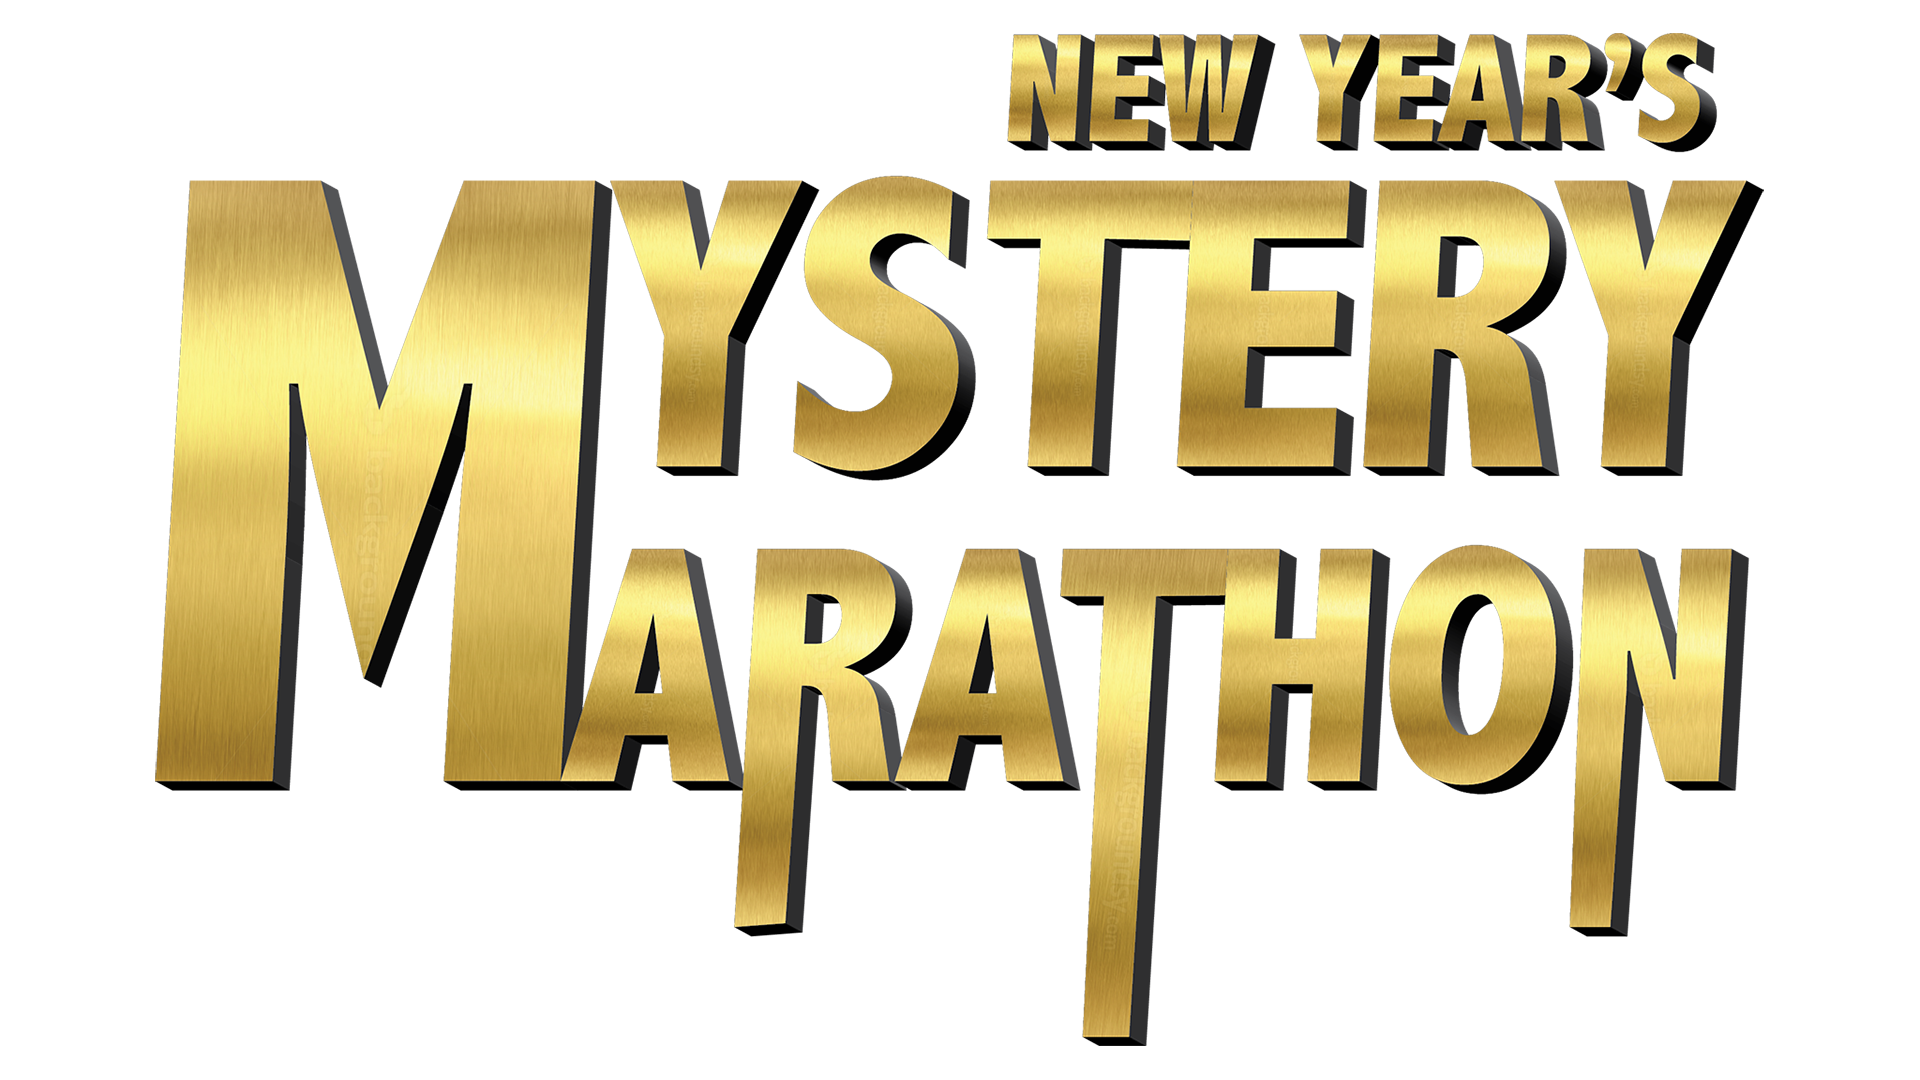 WYCC New Year's Mystery Marathon - Dec. 31 & Jan. 1